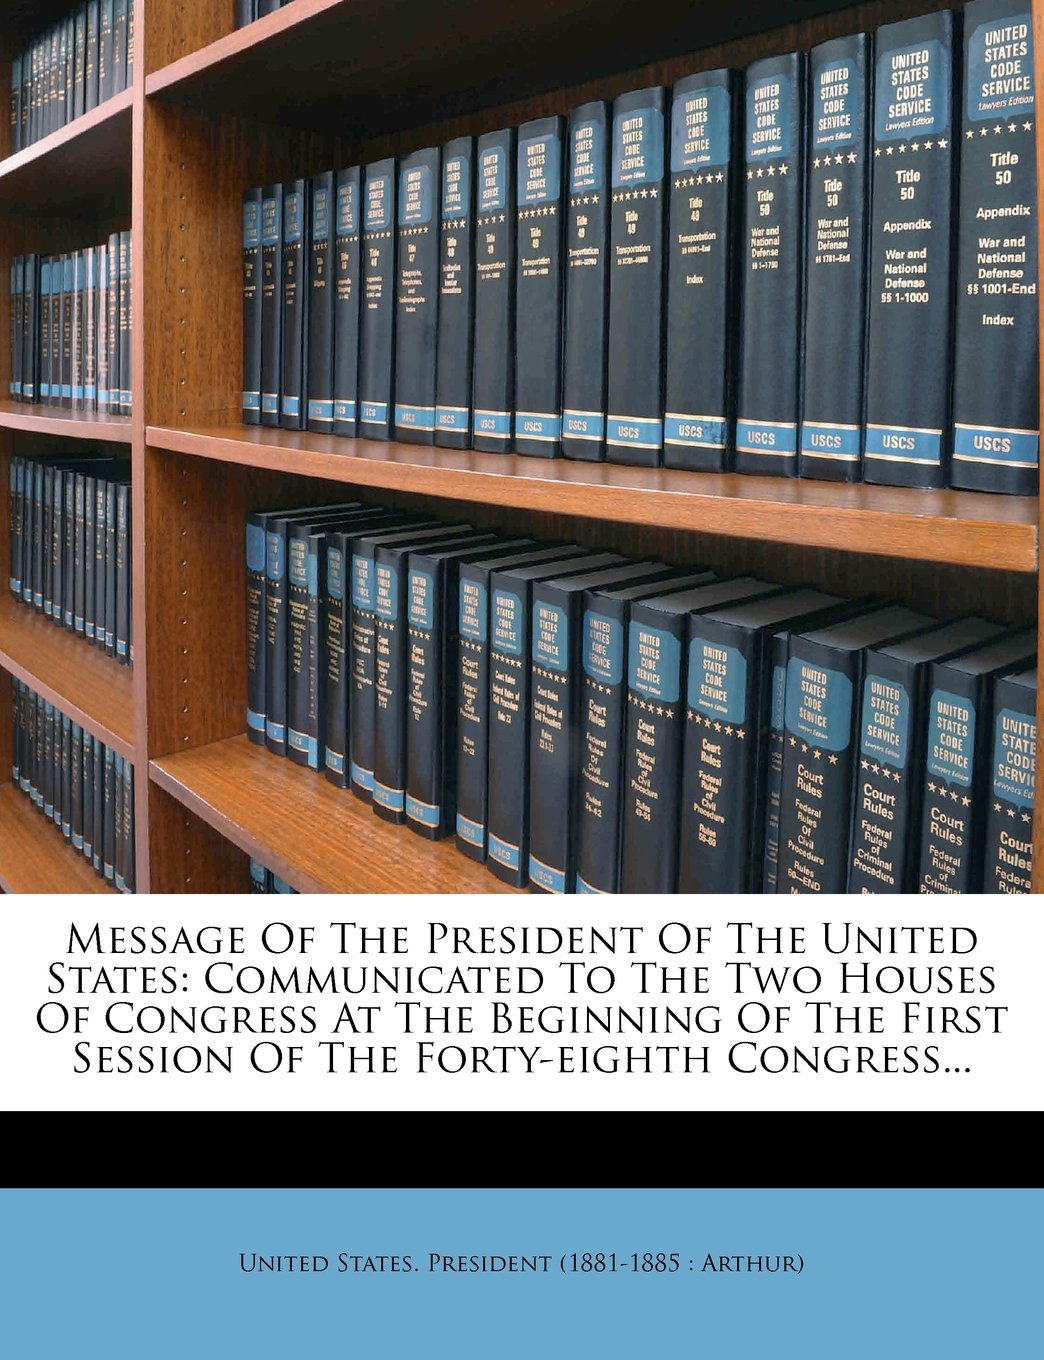 Download Message Of The President Of The United States: Communicated To The Two Houses Of Congress At The Beginning Of The First Session Of The Forty-eighth Congress... ePub fb2 book